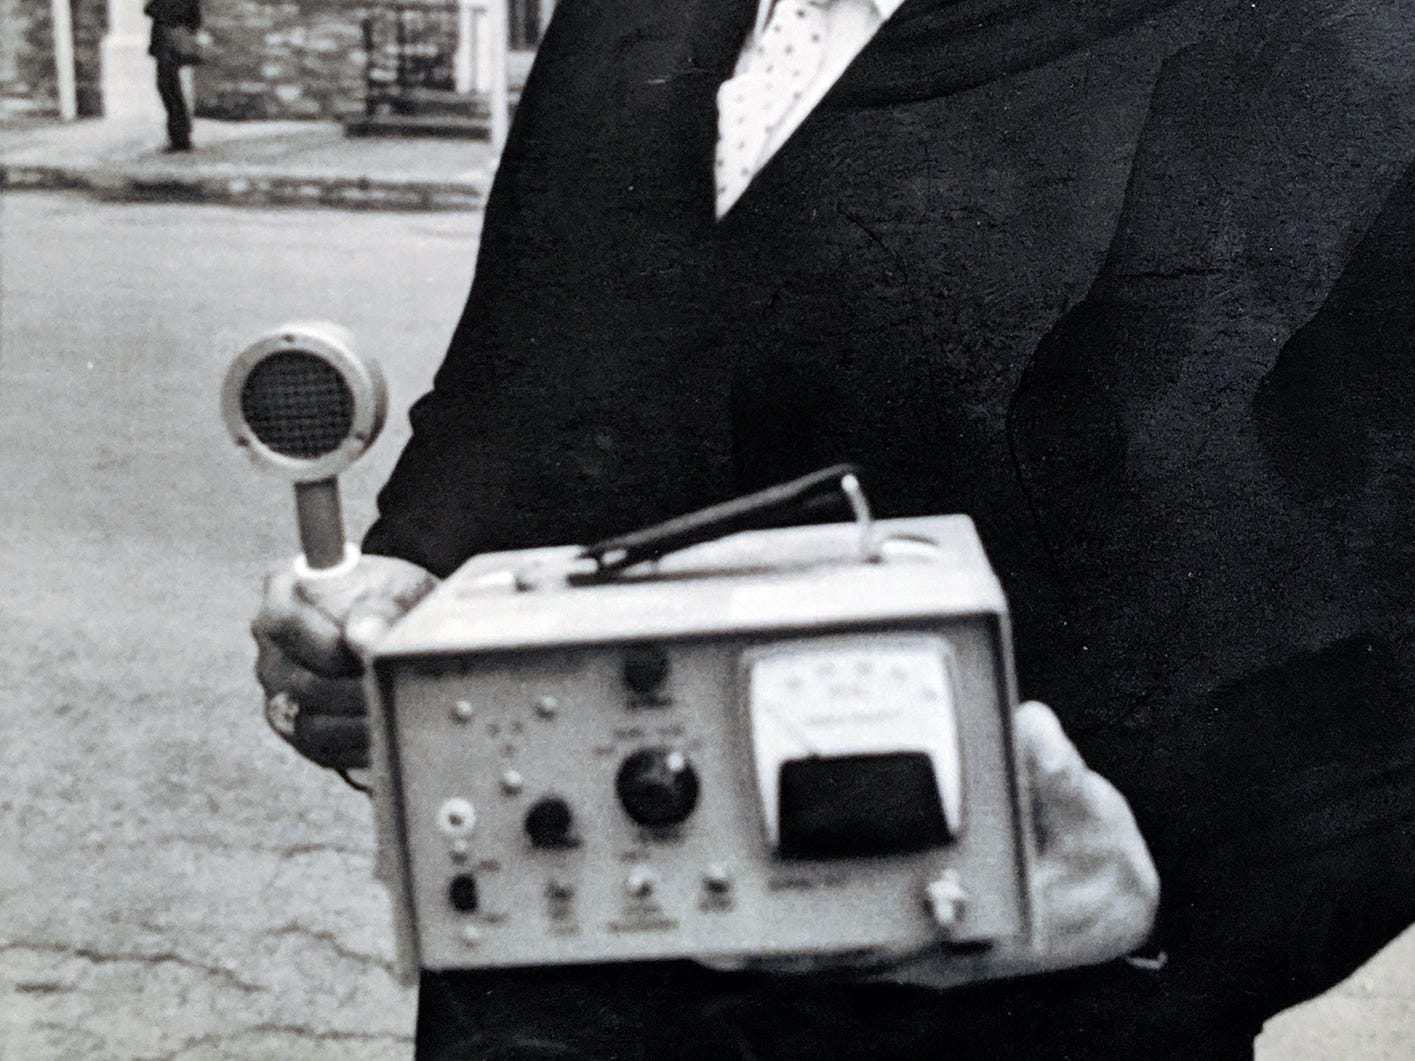 Middletown Mayor Robery Reid stands outside the borough hall with a portable radiation monitor given to him by General Public Utilities Corp. for use in the town, which sits in the shadow of Three Mile Island, on March 16, 1979.